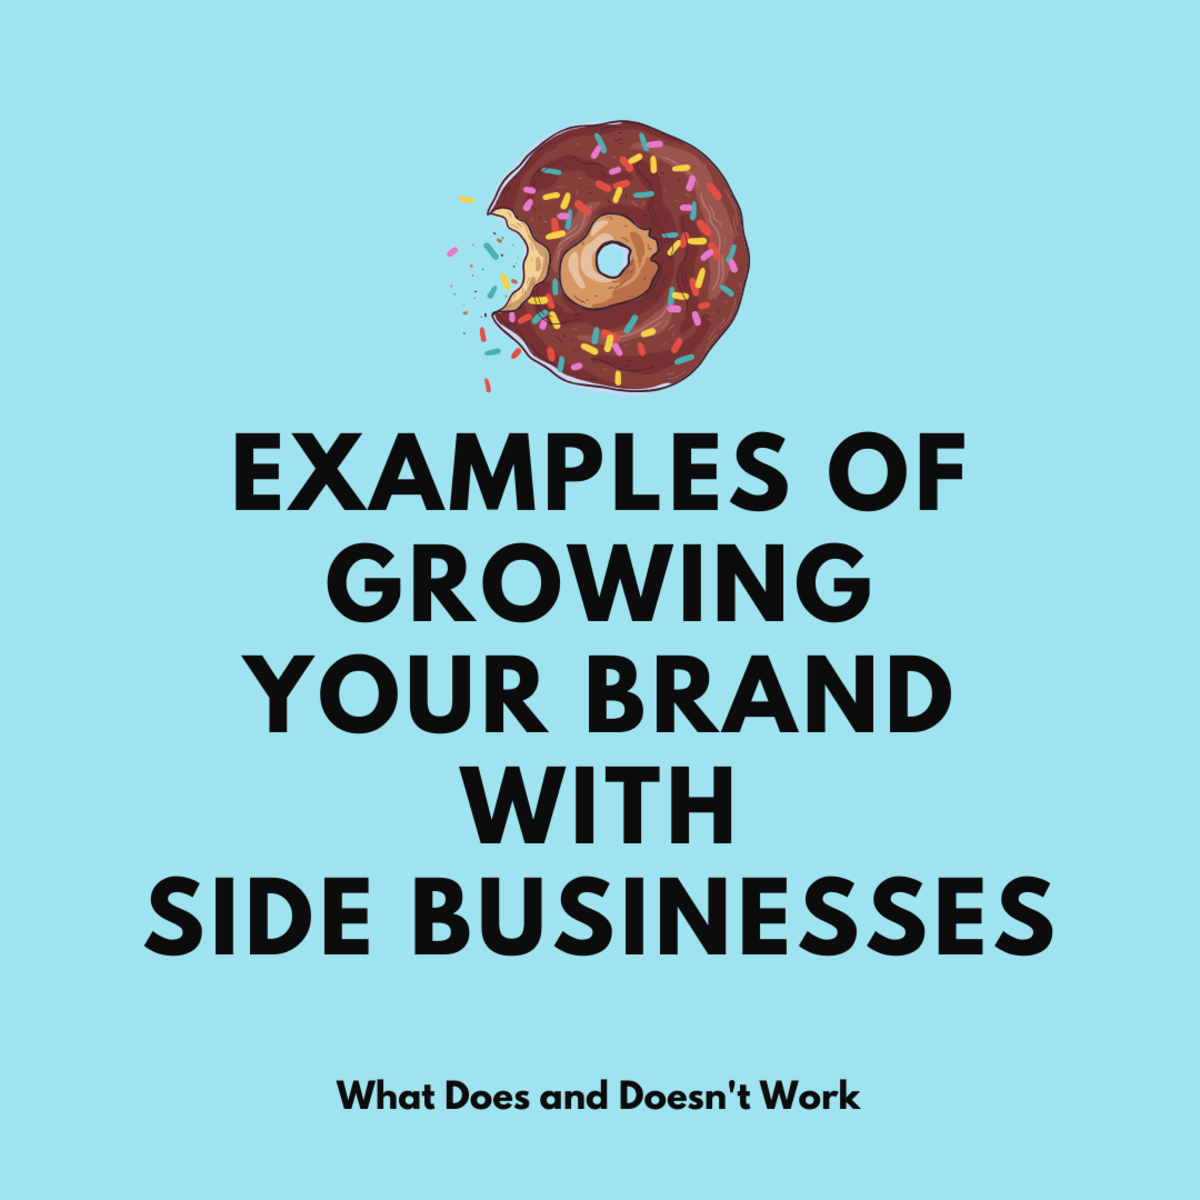 Read some stories of how individuals have tried to use side businesses to grow their brand, and discover what really works.